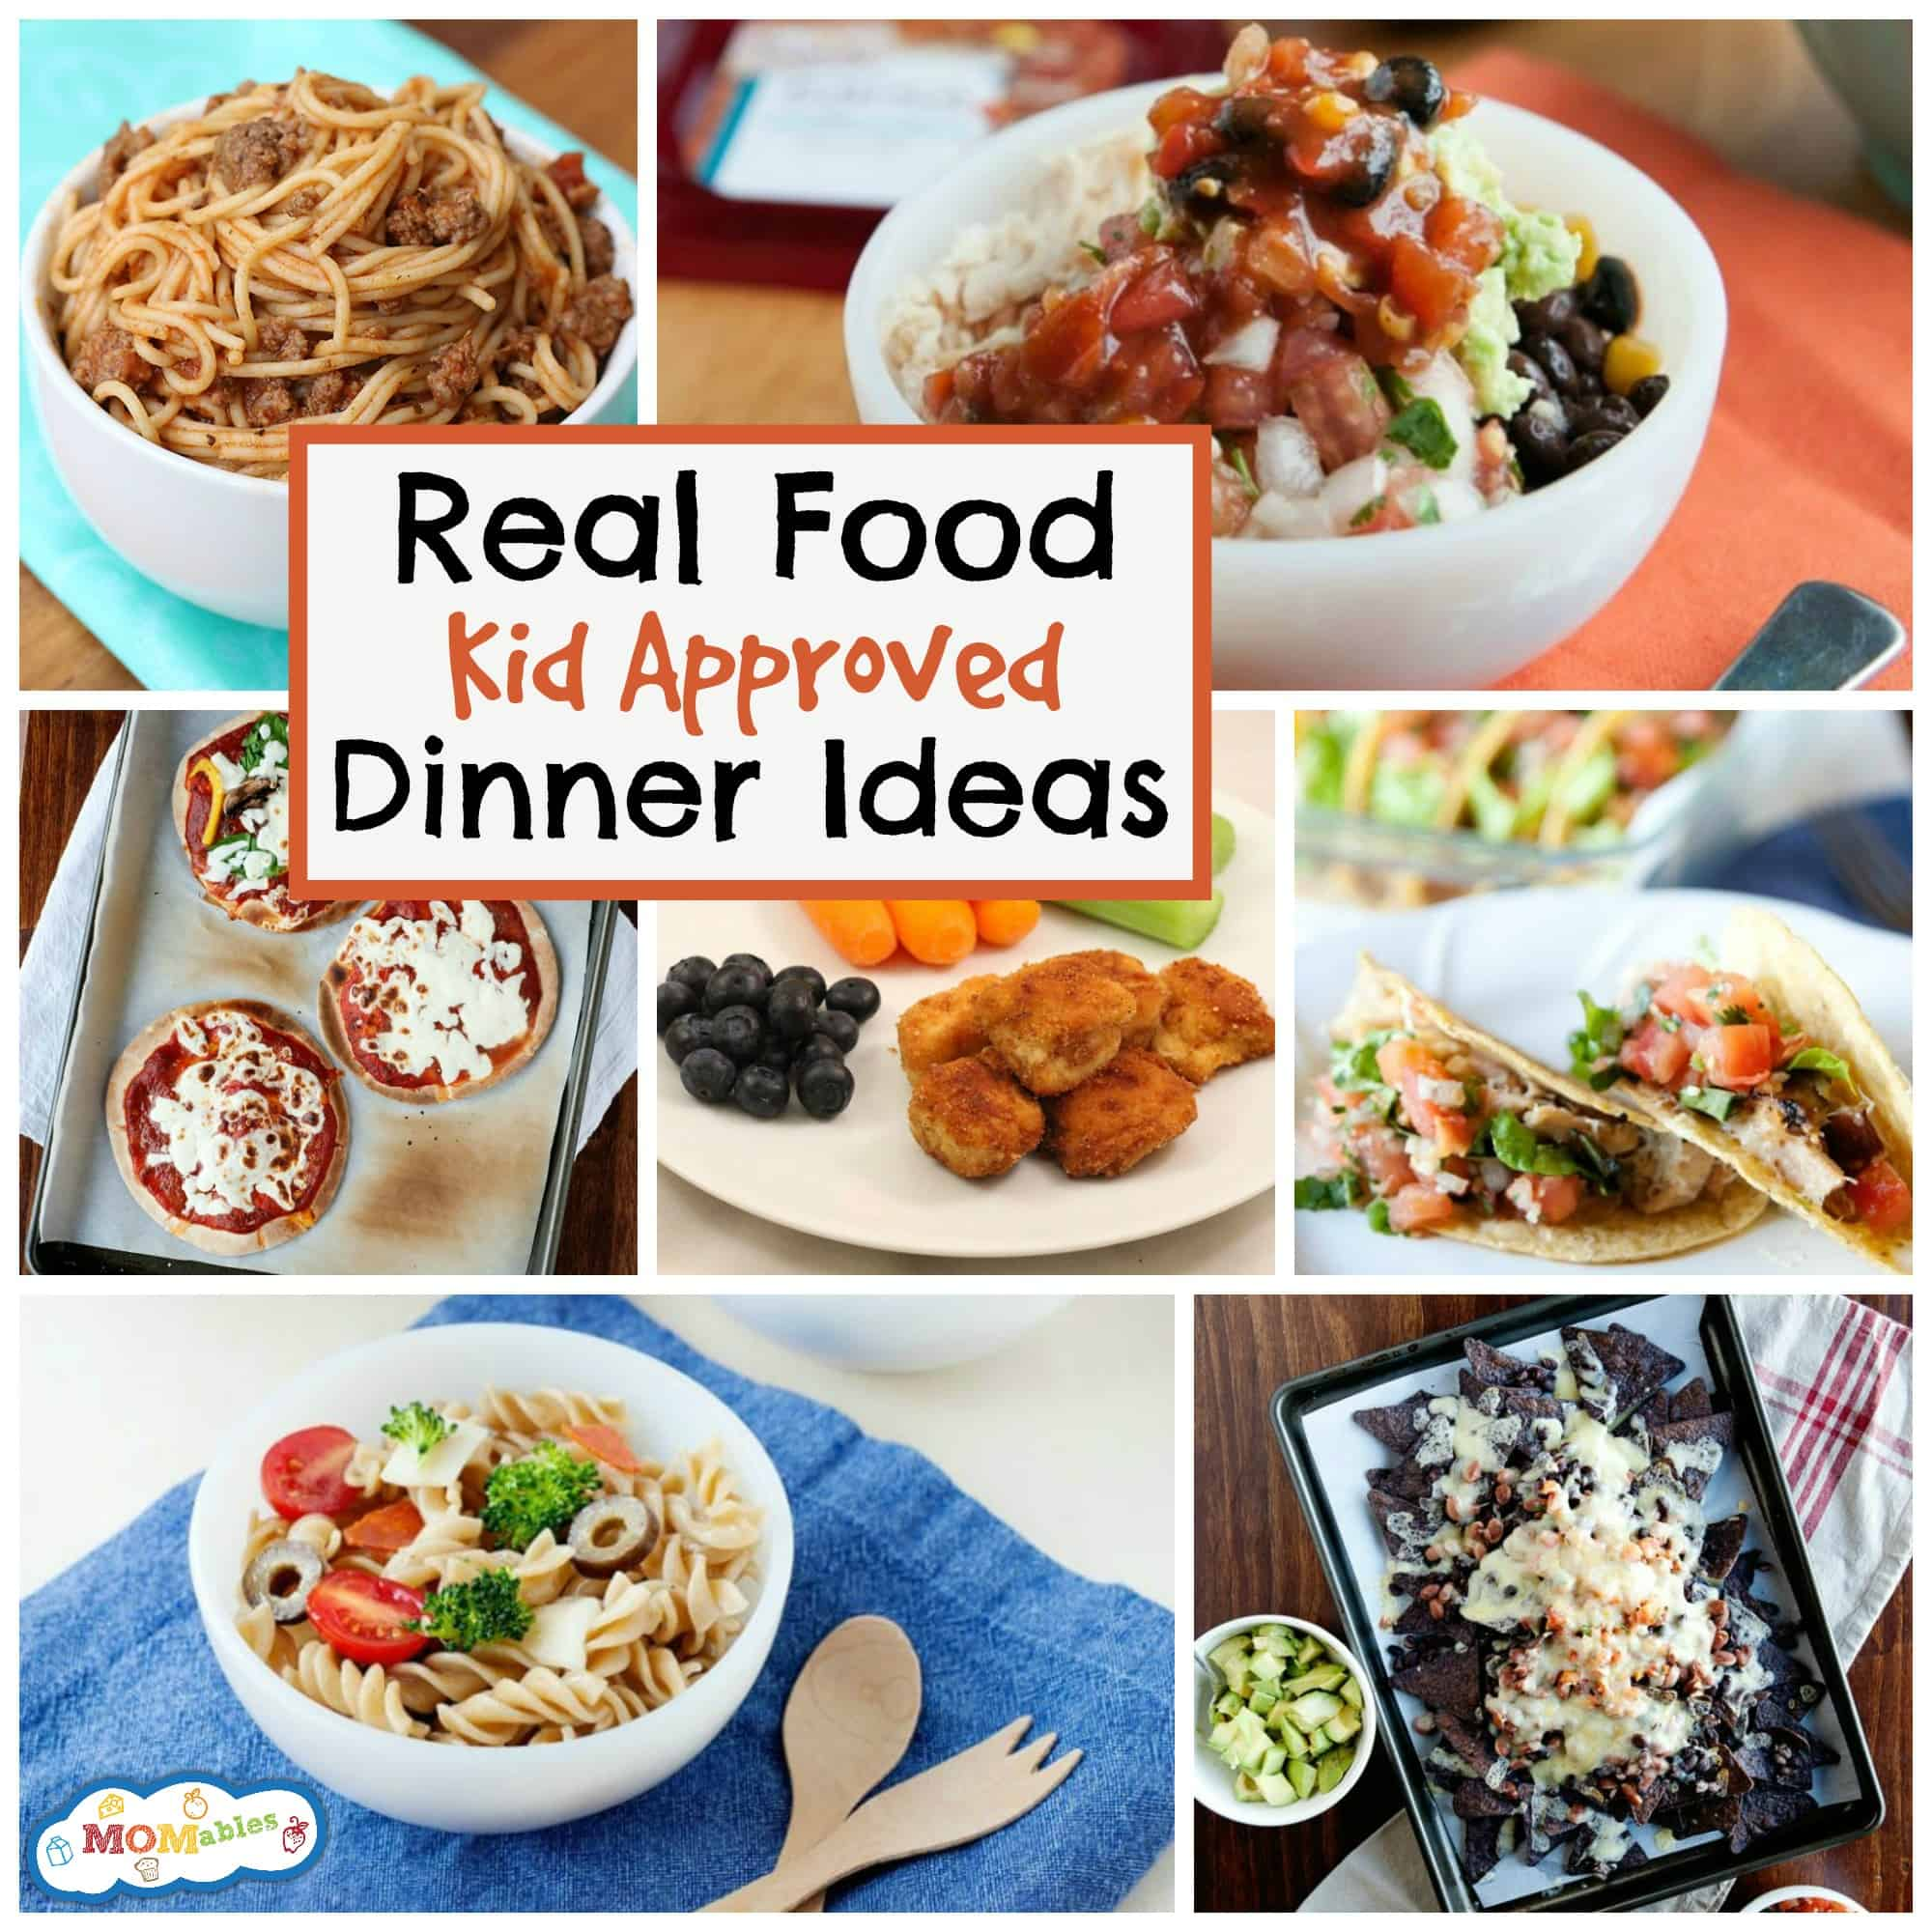 Dinner Ideas For Kids - The Best Real Food Recipes